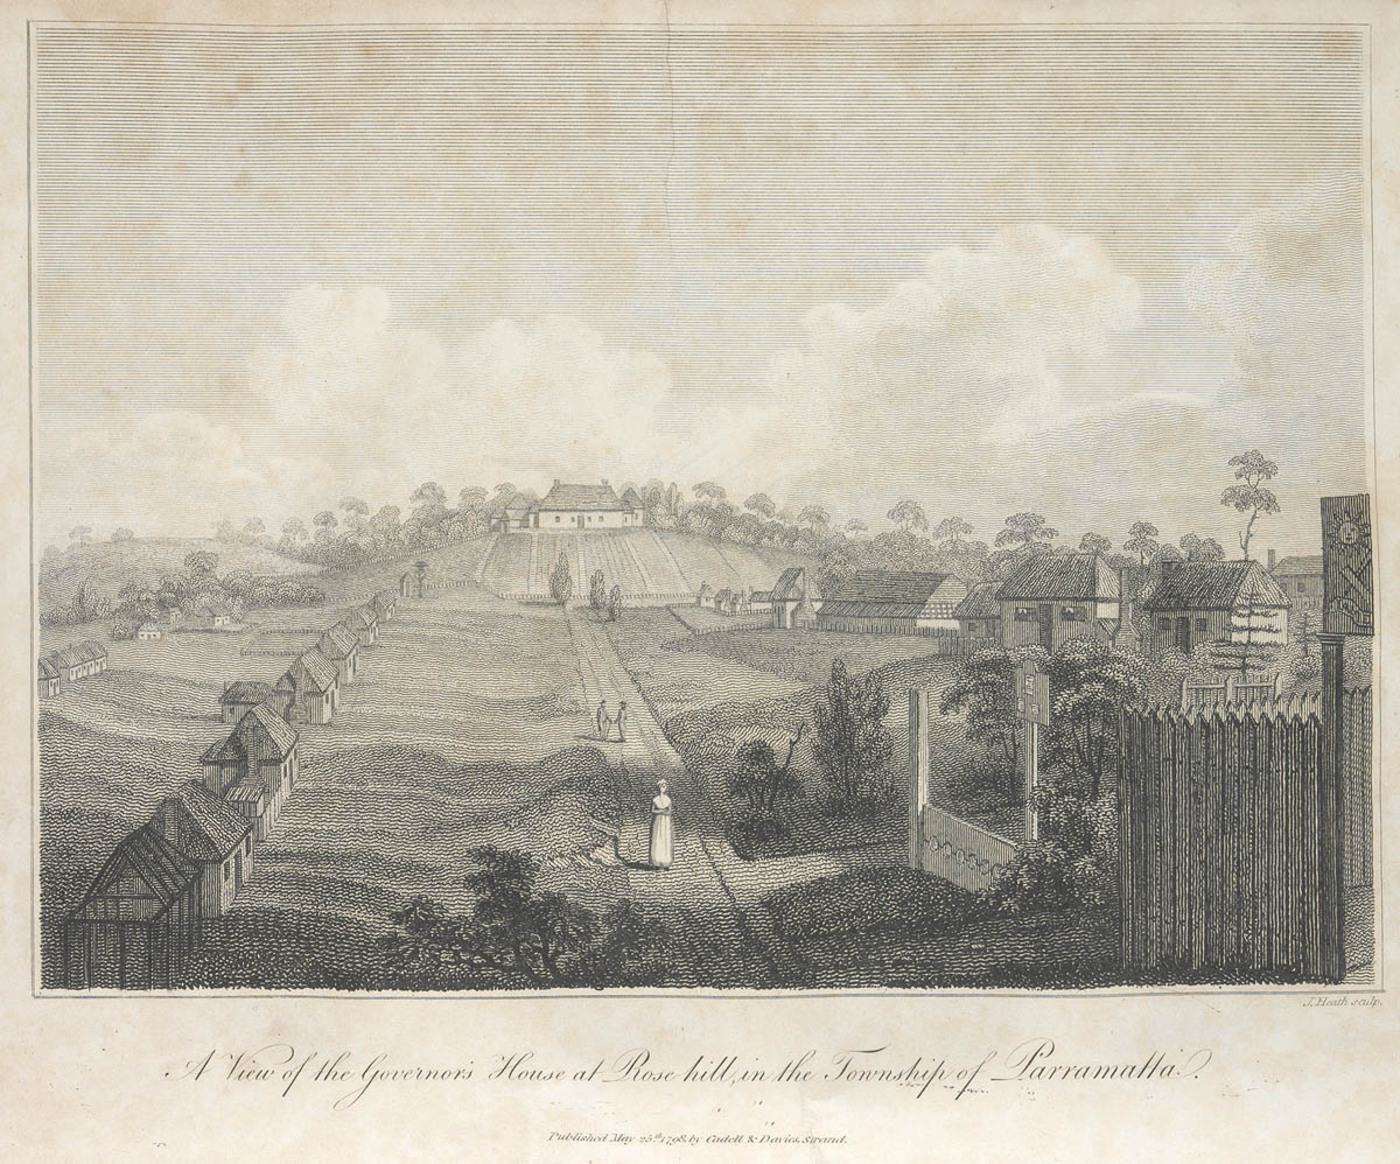 Punishment stocks are visible to the right in this view of the Governor's house at Rose Hill in Parramatta c1798, State Library of NSW